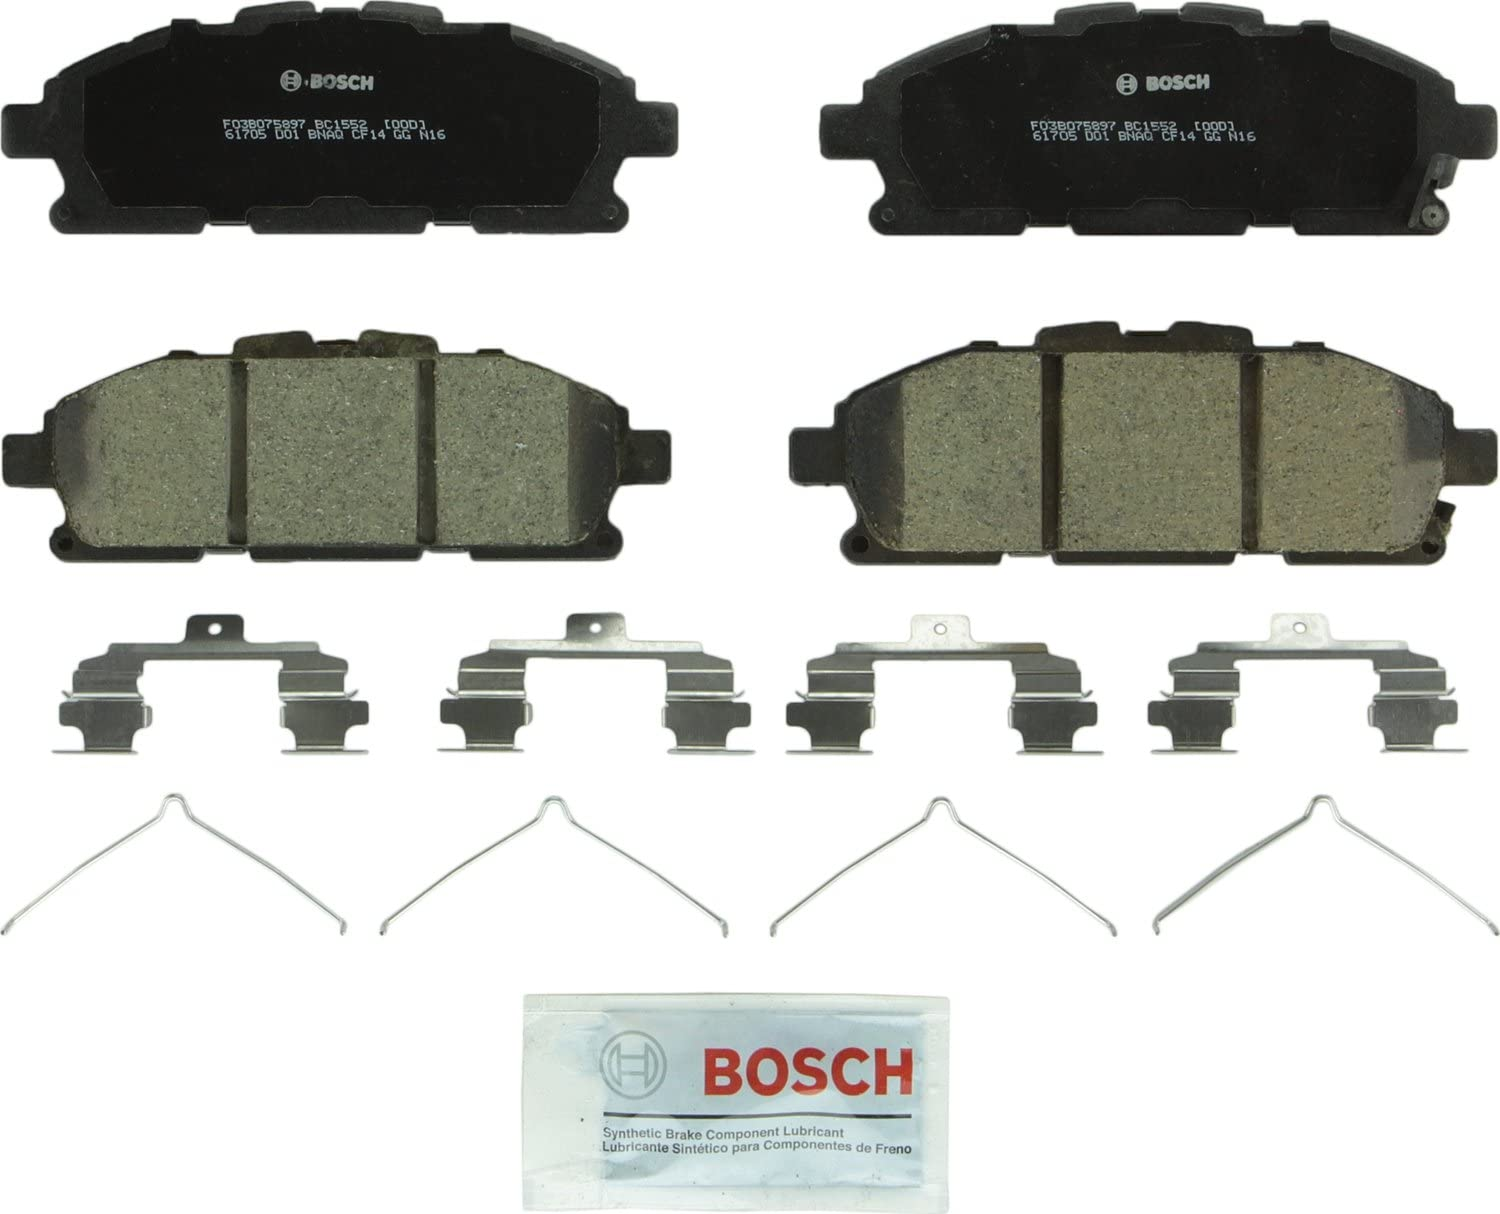 Nissan Altima Leaf Bosch BC1650 QuietCast Premium Ceramic Disc Brake Pad Set For Front